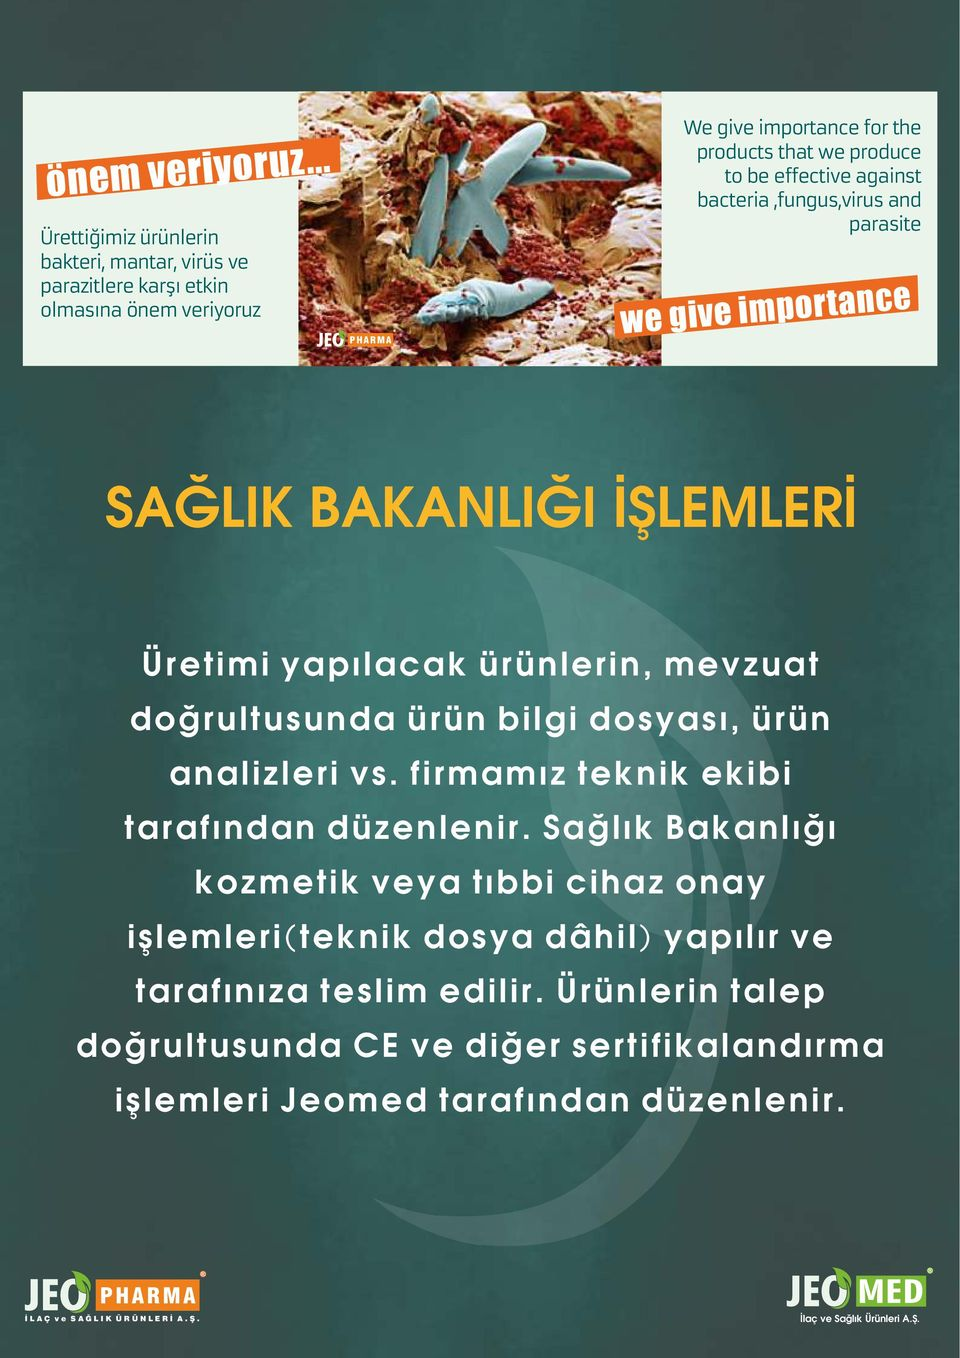 be effective against bacteria,fungus,virus and parasite we give importance SAĞLIK BAKANLIĞI İŞLEMLERİ Üretimi yapılacak ürünlerin, mevzuat doğrultusunda